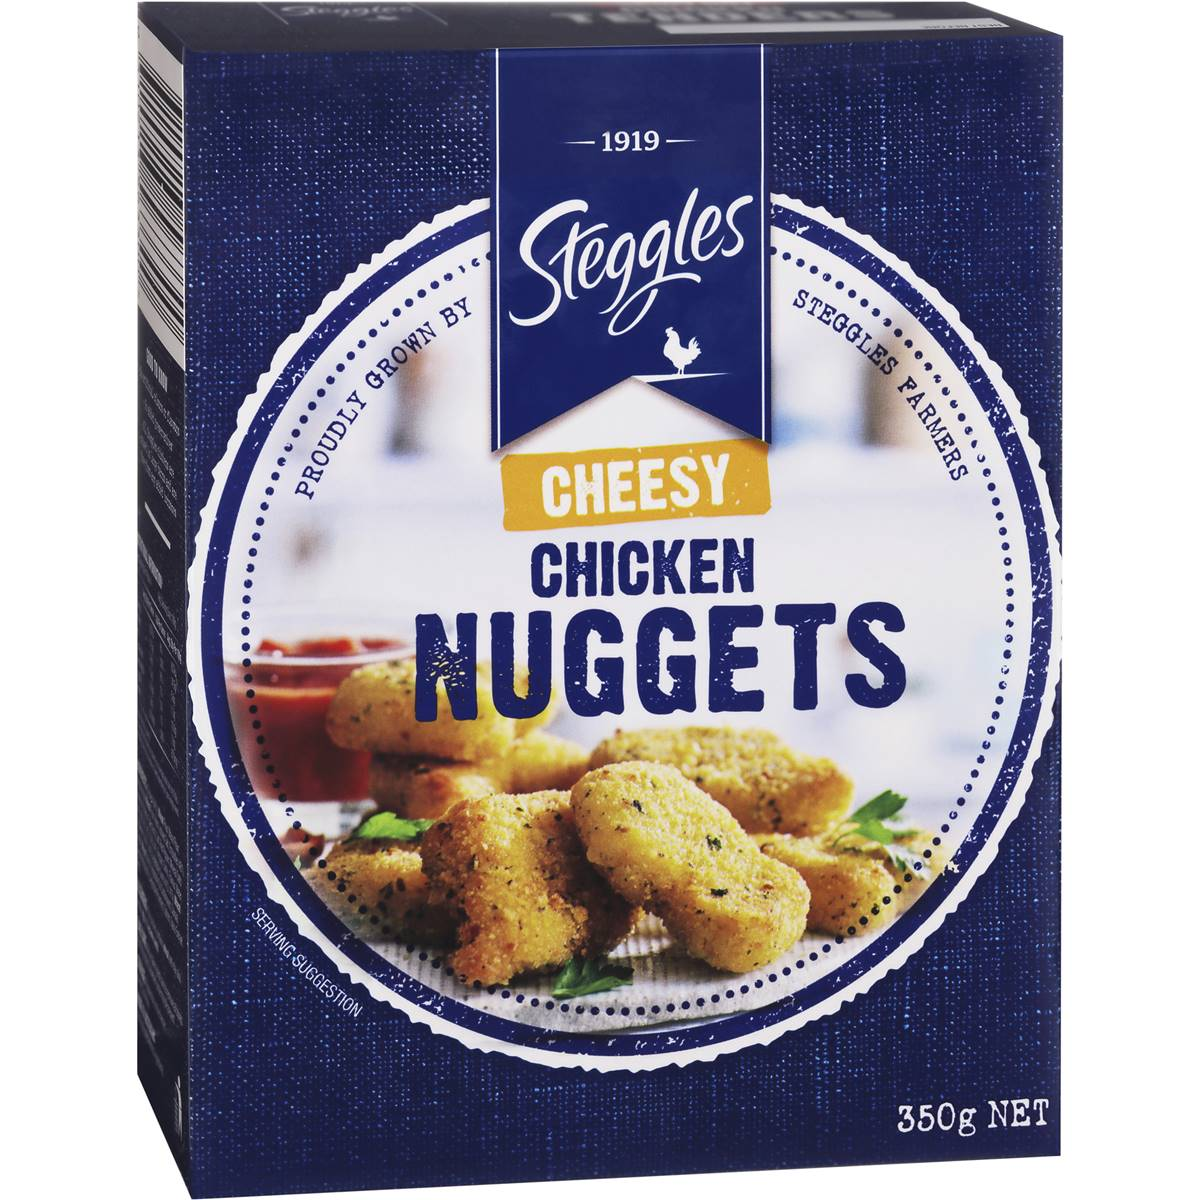 Woolworths Steggles Cheesey Chicken Nuggets Cheesy